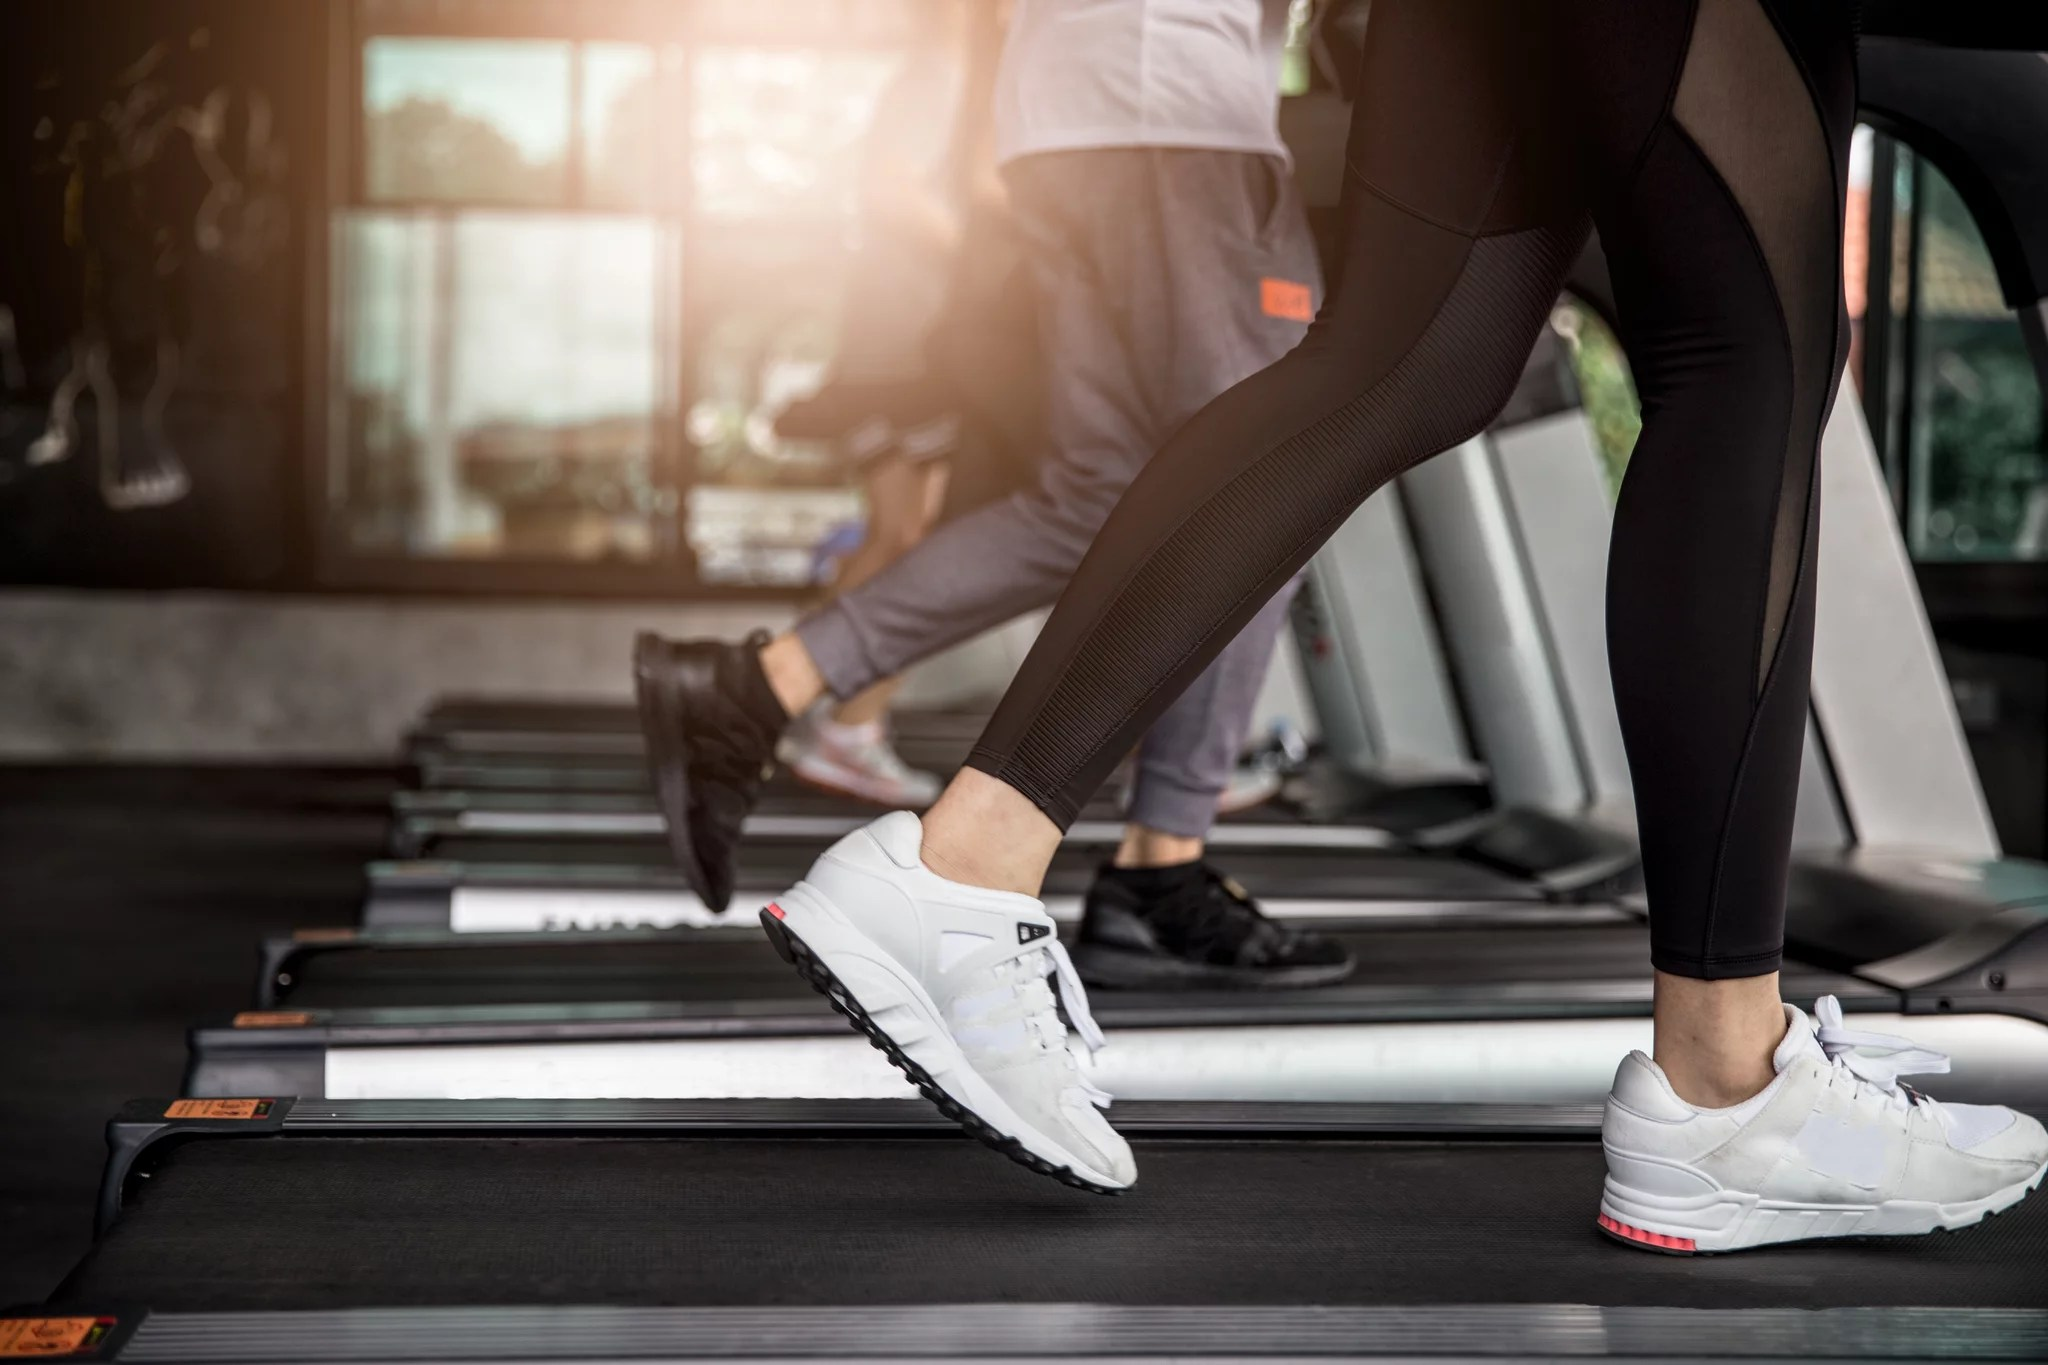 Walking Your Way to Weight Loss? Here's How Many Minutes You Should Log on the Treadmill